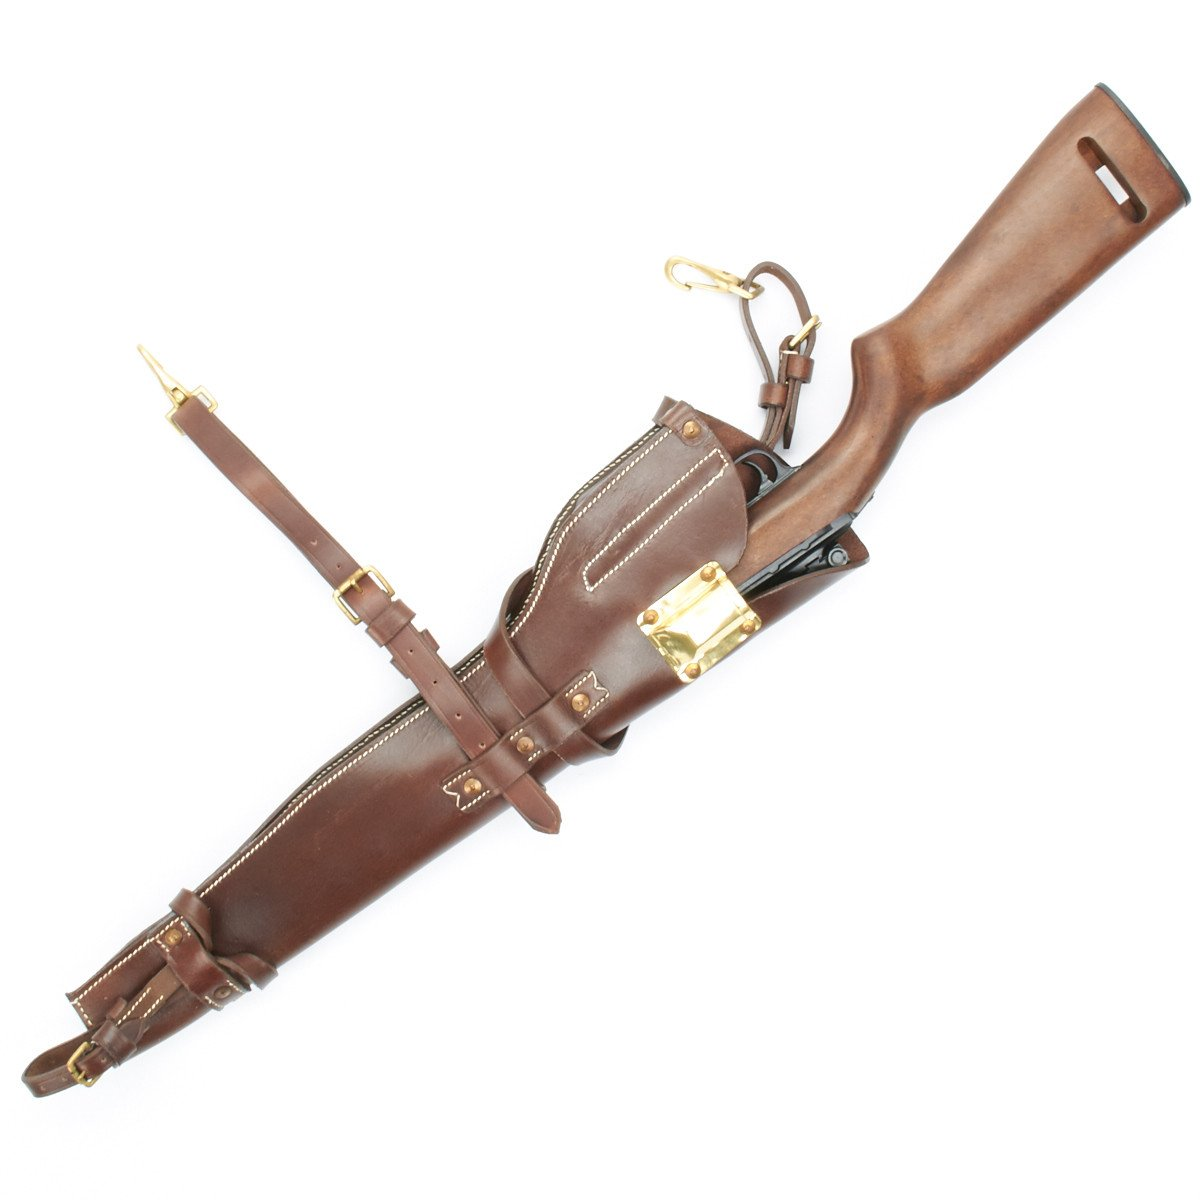 U S  WWII M1 Carbine Leather Scabbard Holster